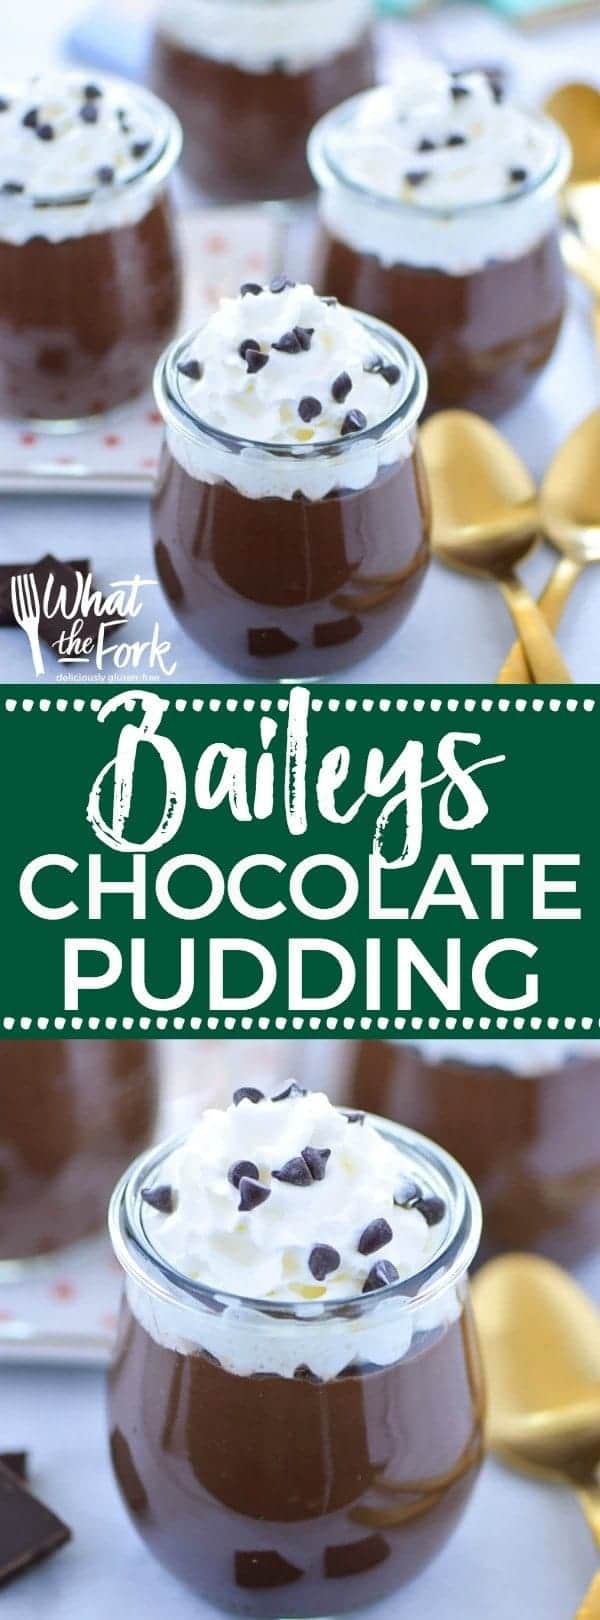 Easy recipe for Baileys Chocolate Pudding (egg free). This no-bake dessert is perfect for St. Patrick's Day. Gluten free dessert recipe from @whattheforkblog | whattheforkfoodblog.com | St. Patrick's Day recipes | easy dessert recipes | chocolate recipes | recipes with Baileys Irish Cream | how to make chocolate pudding | pudding recipes | pudding made with cornstarch | homemade pudding